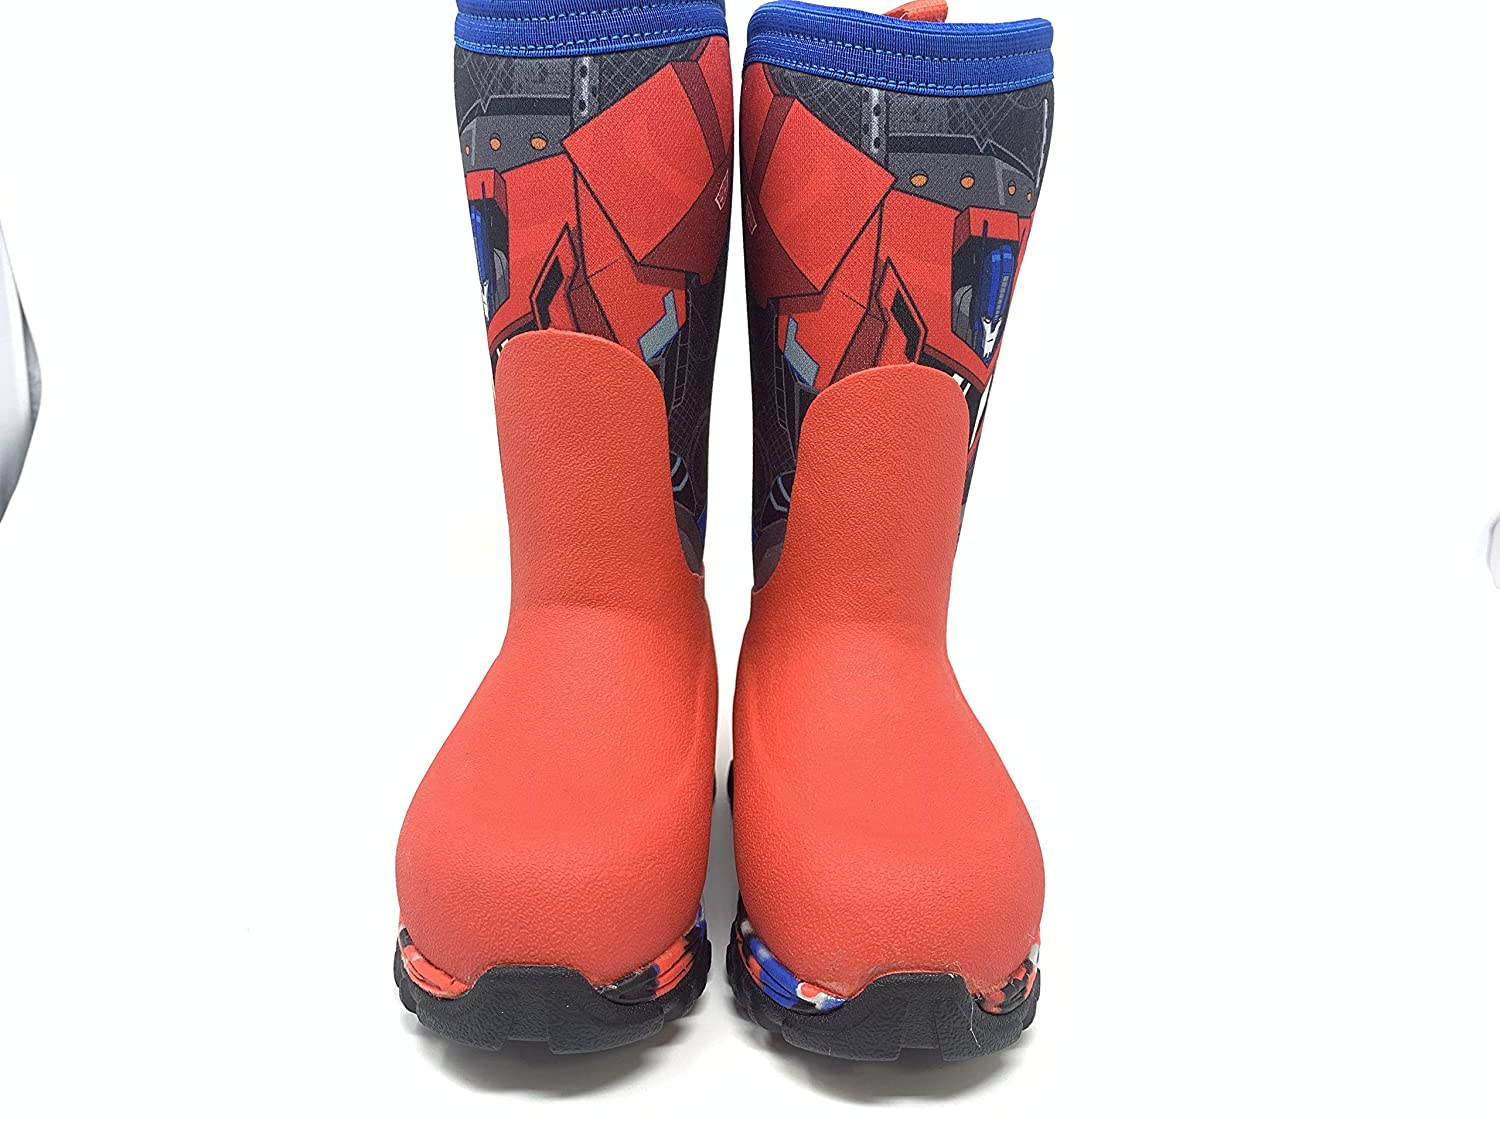 Muck Boot Boys Toddlers Rugged II Transformers Boots Size 7 Red